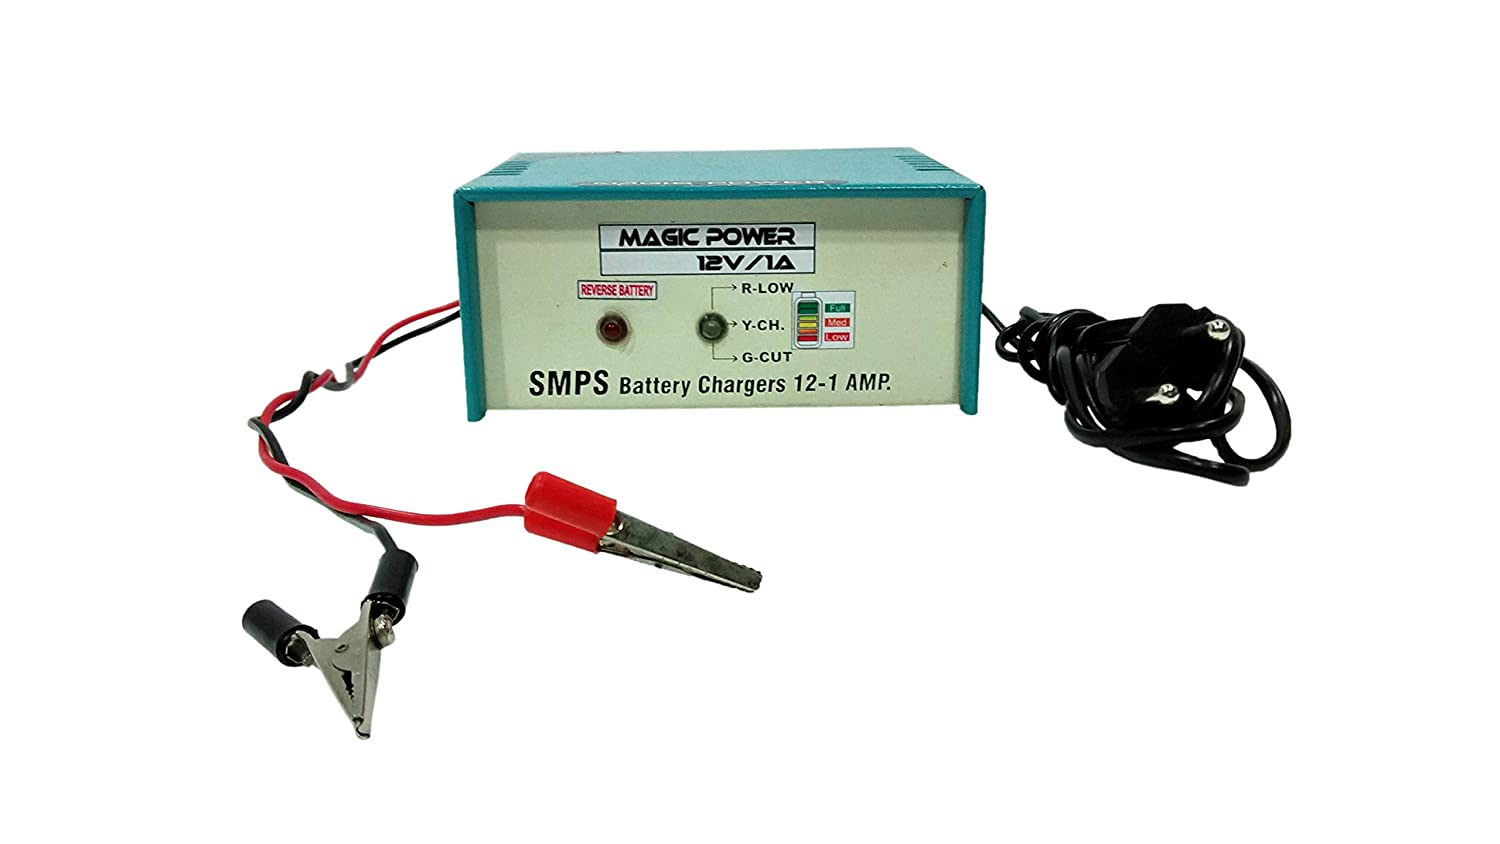 Magic Power 12v 1a Charger For 75mah Battery And 2 Circuit Cellphone Using Bike Solar Electronics